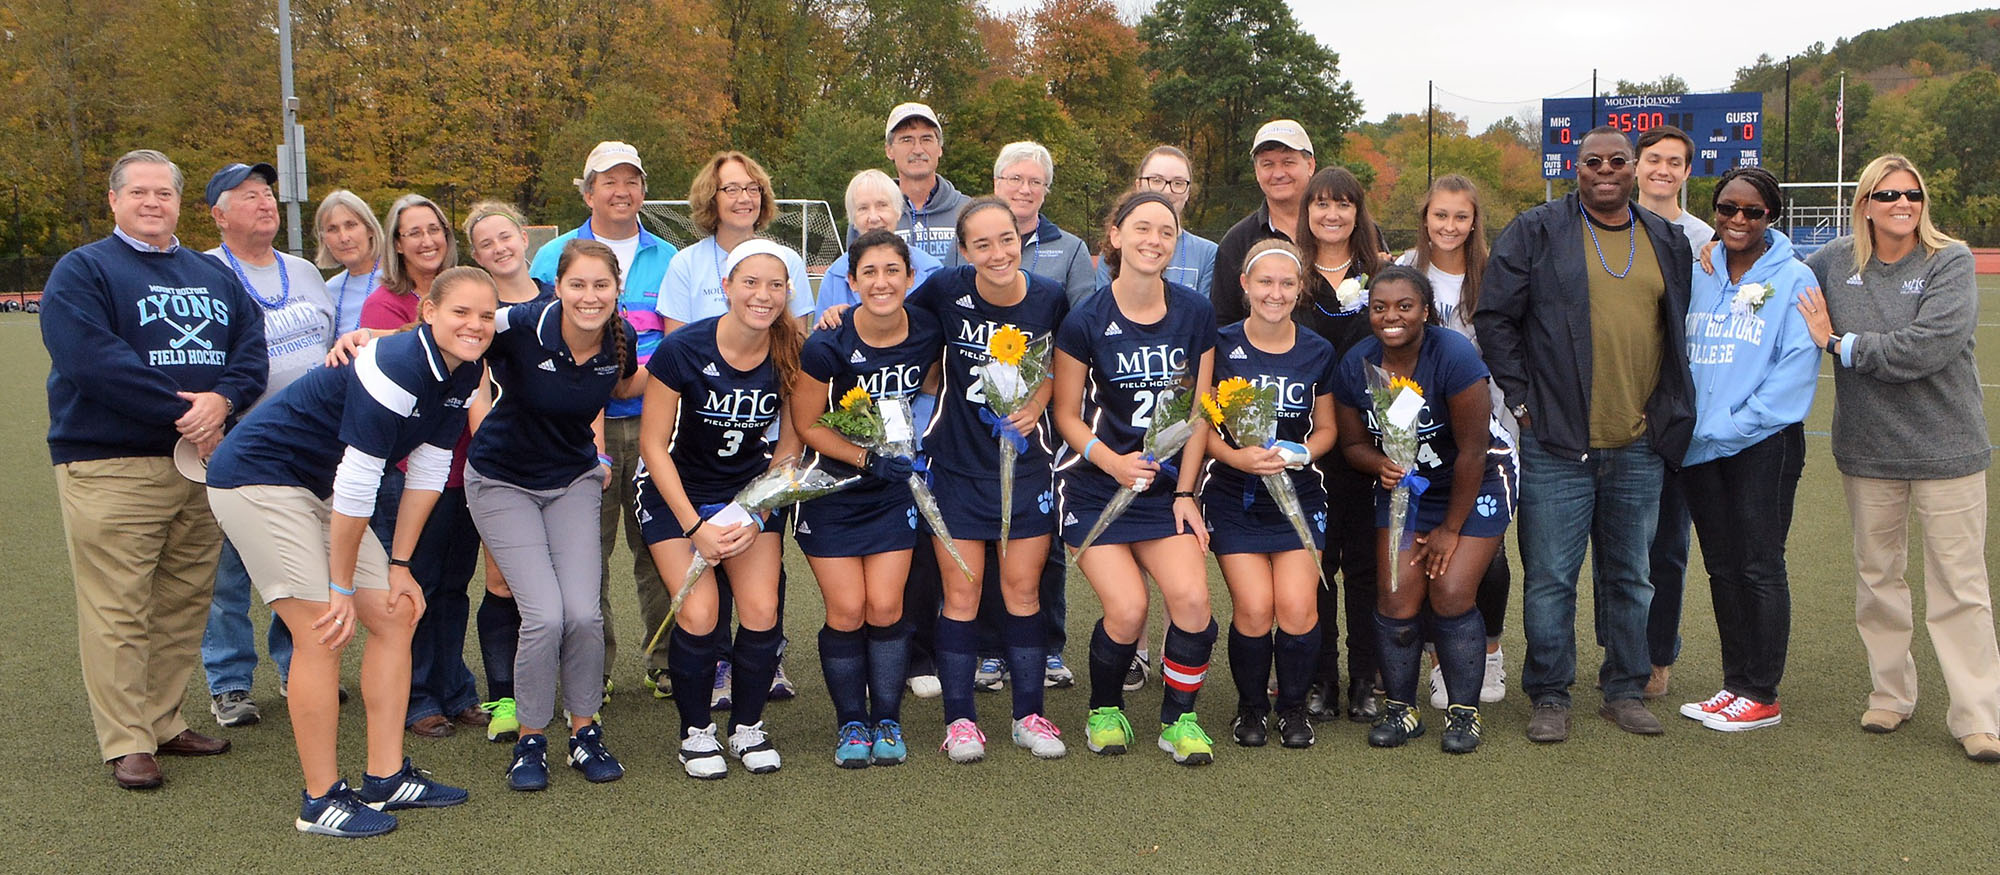 Photo of the Lyons field hockey team's six seniors and their families during a pre-game ceremony on October 14, 2017 against Wheaton.